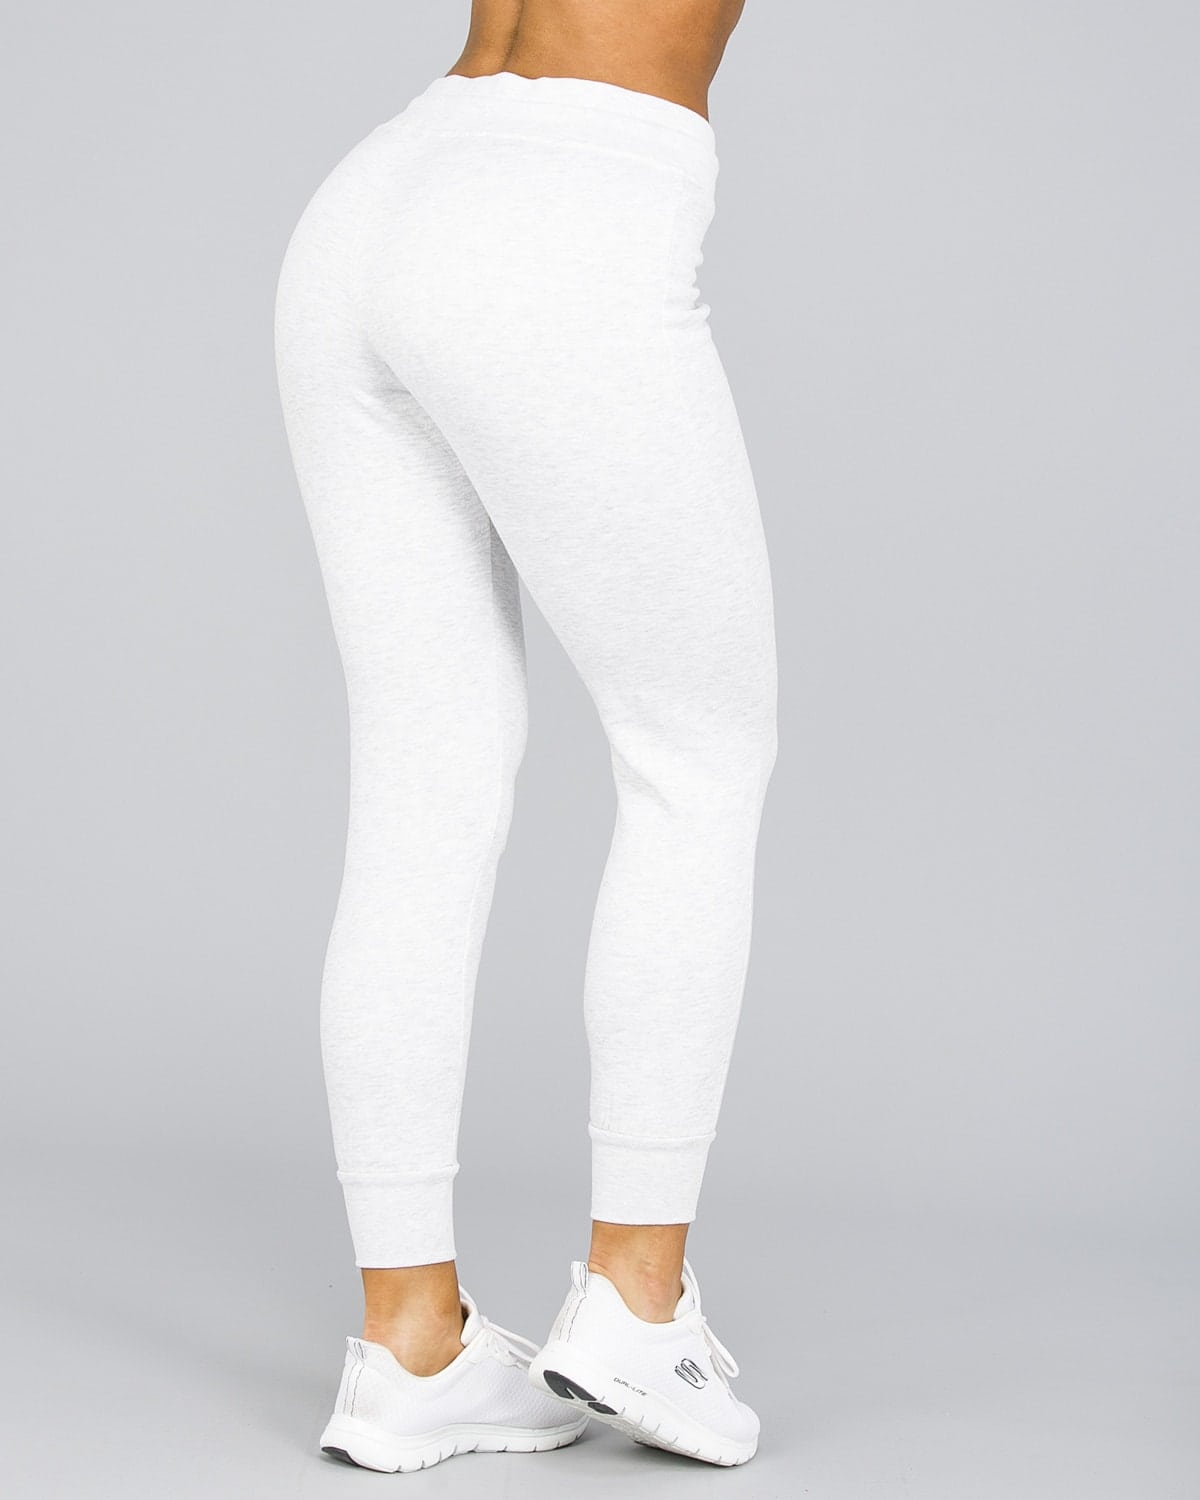 4F Fleece Pant Women – Light Grey Melange5